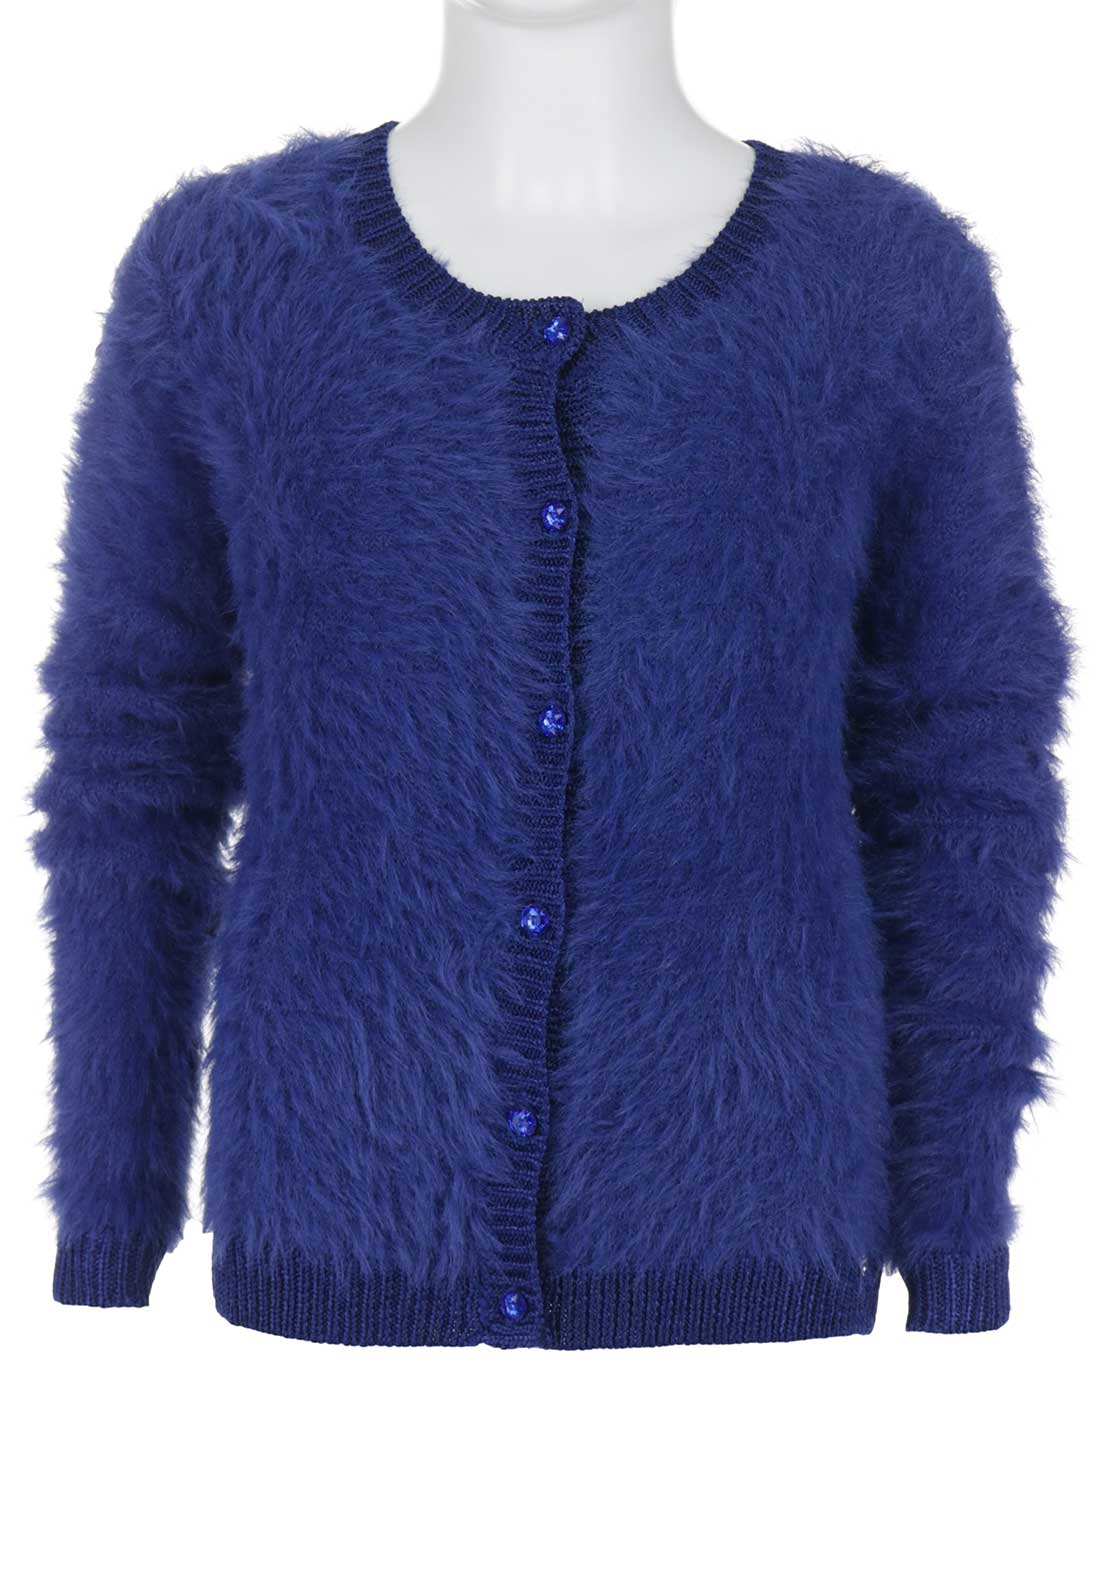 Guess Girls Faux Fur Cardigan, Royal Blue